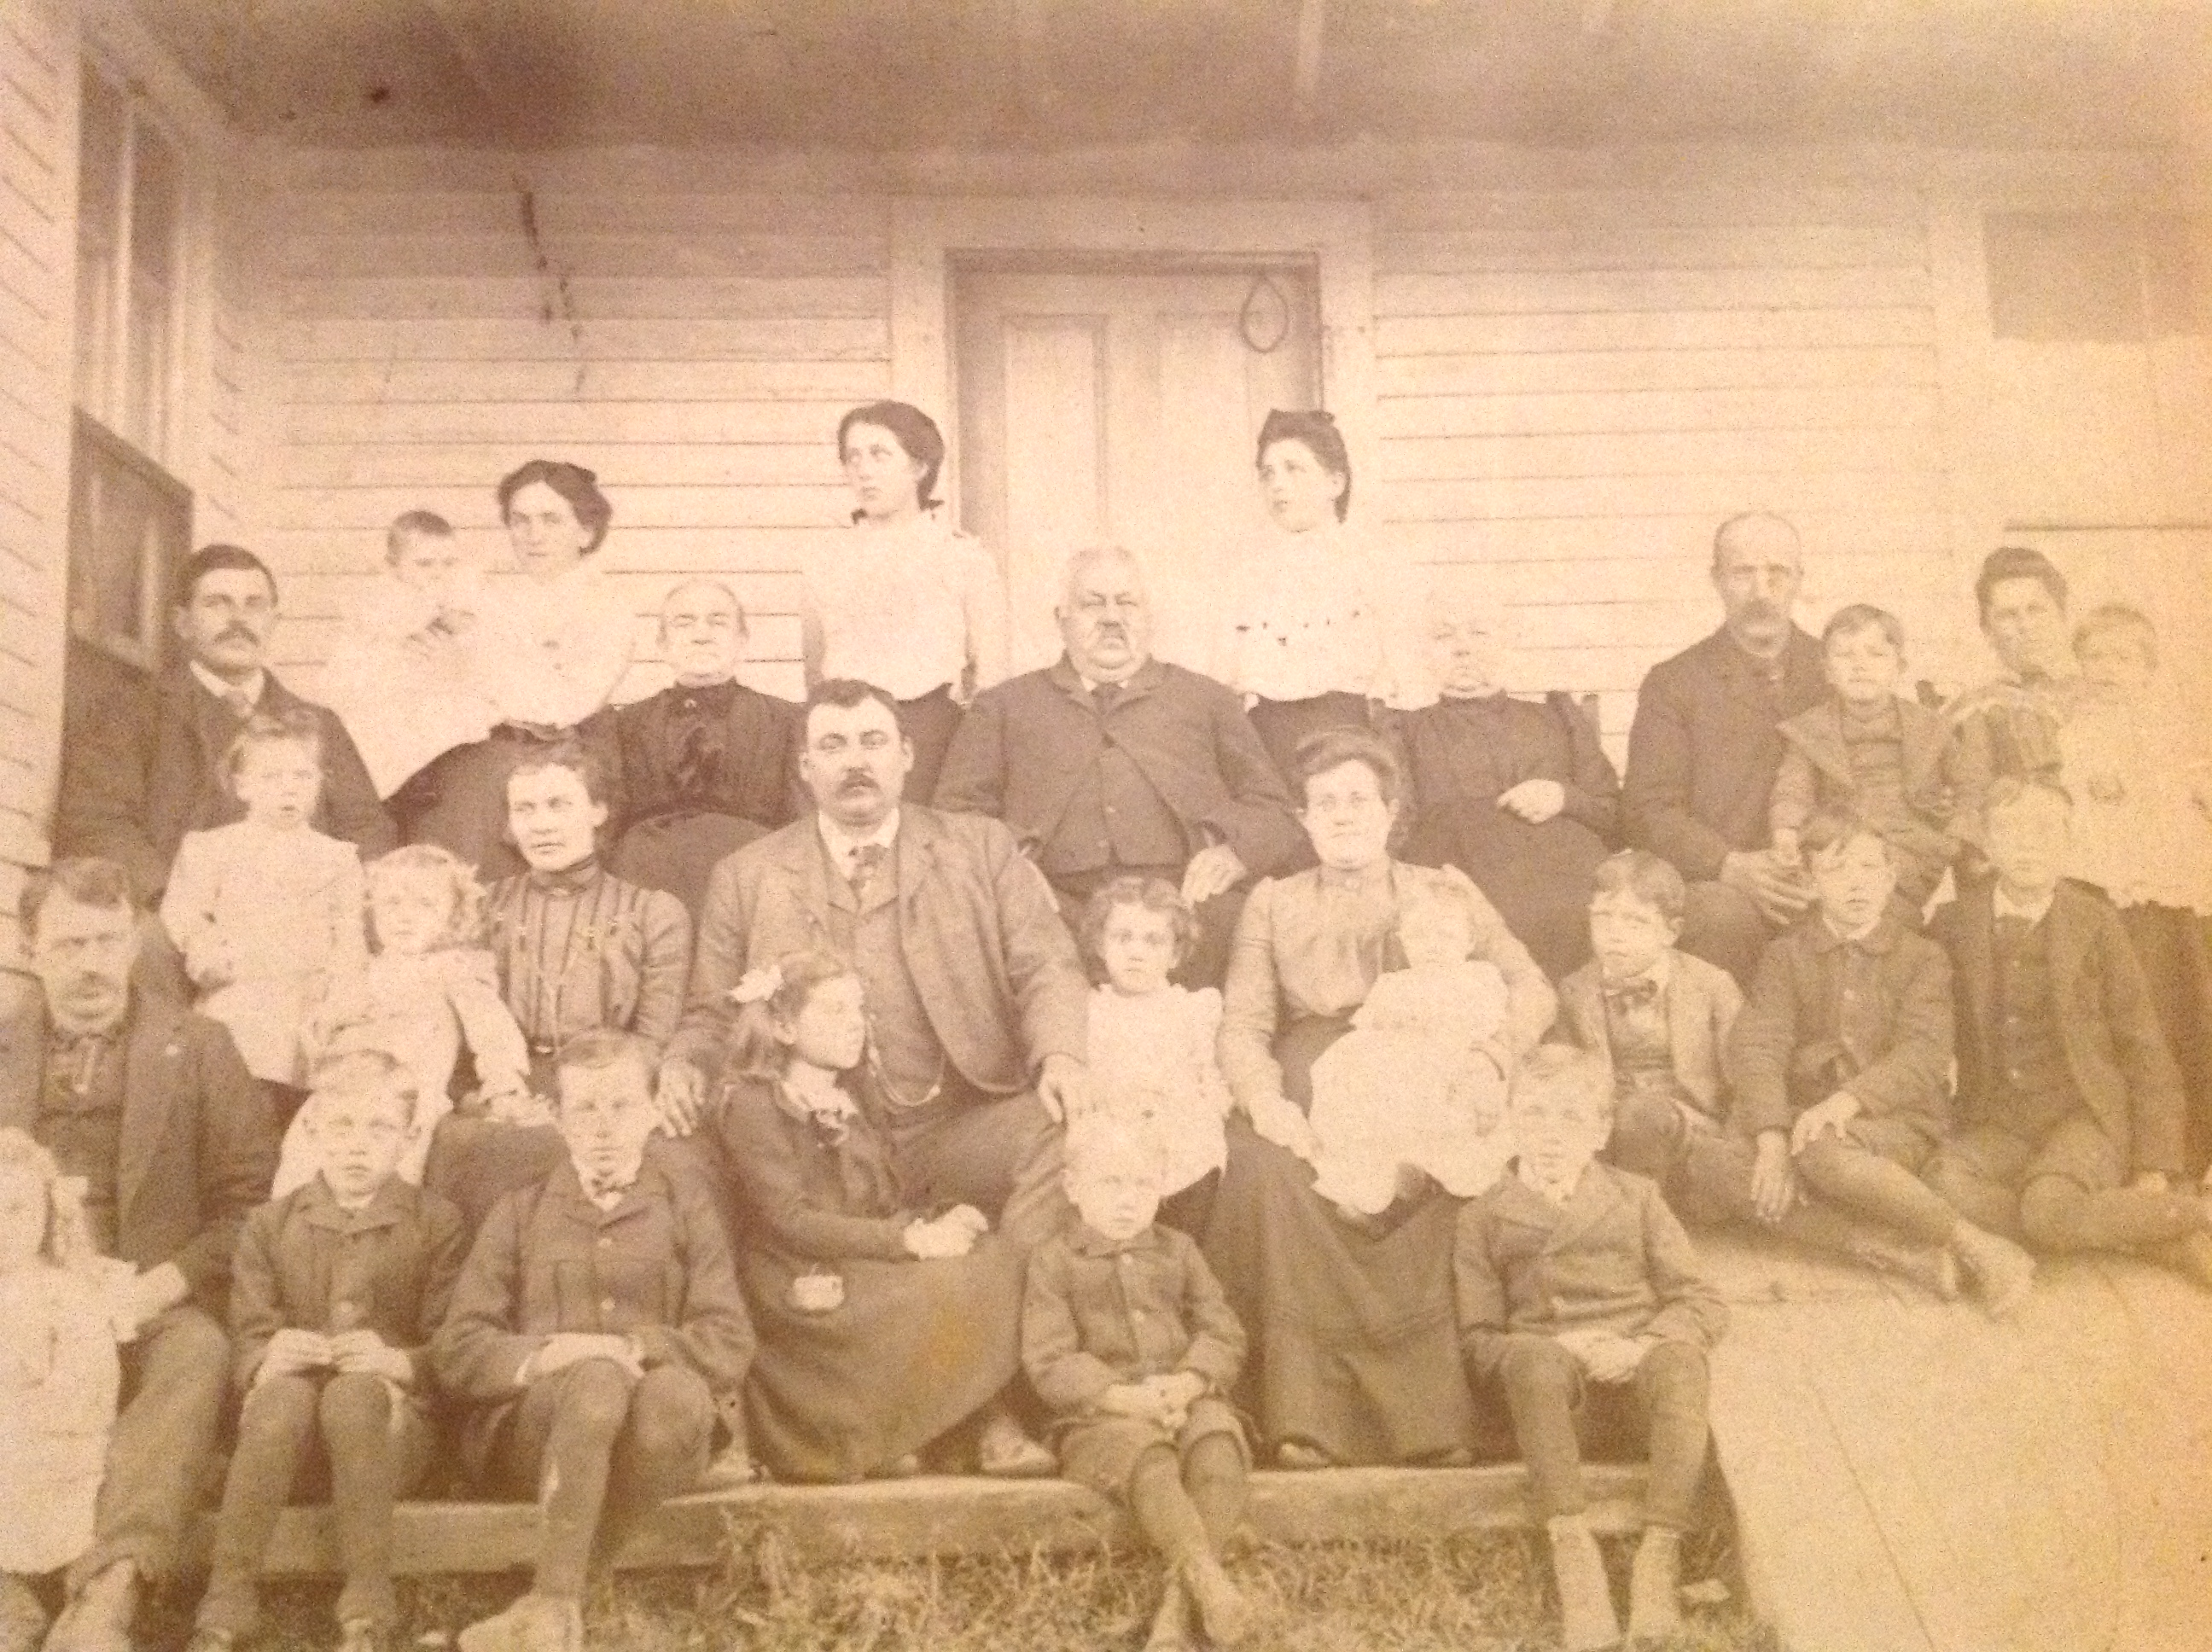 Throwback Thursday – Now that's a family portrait!